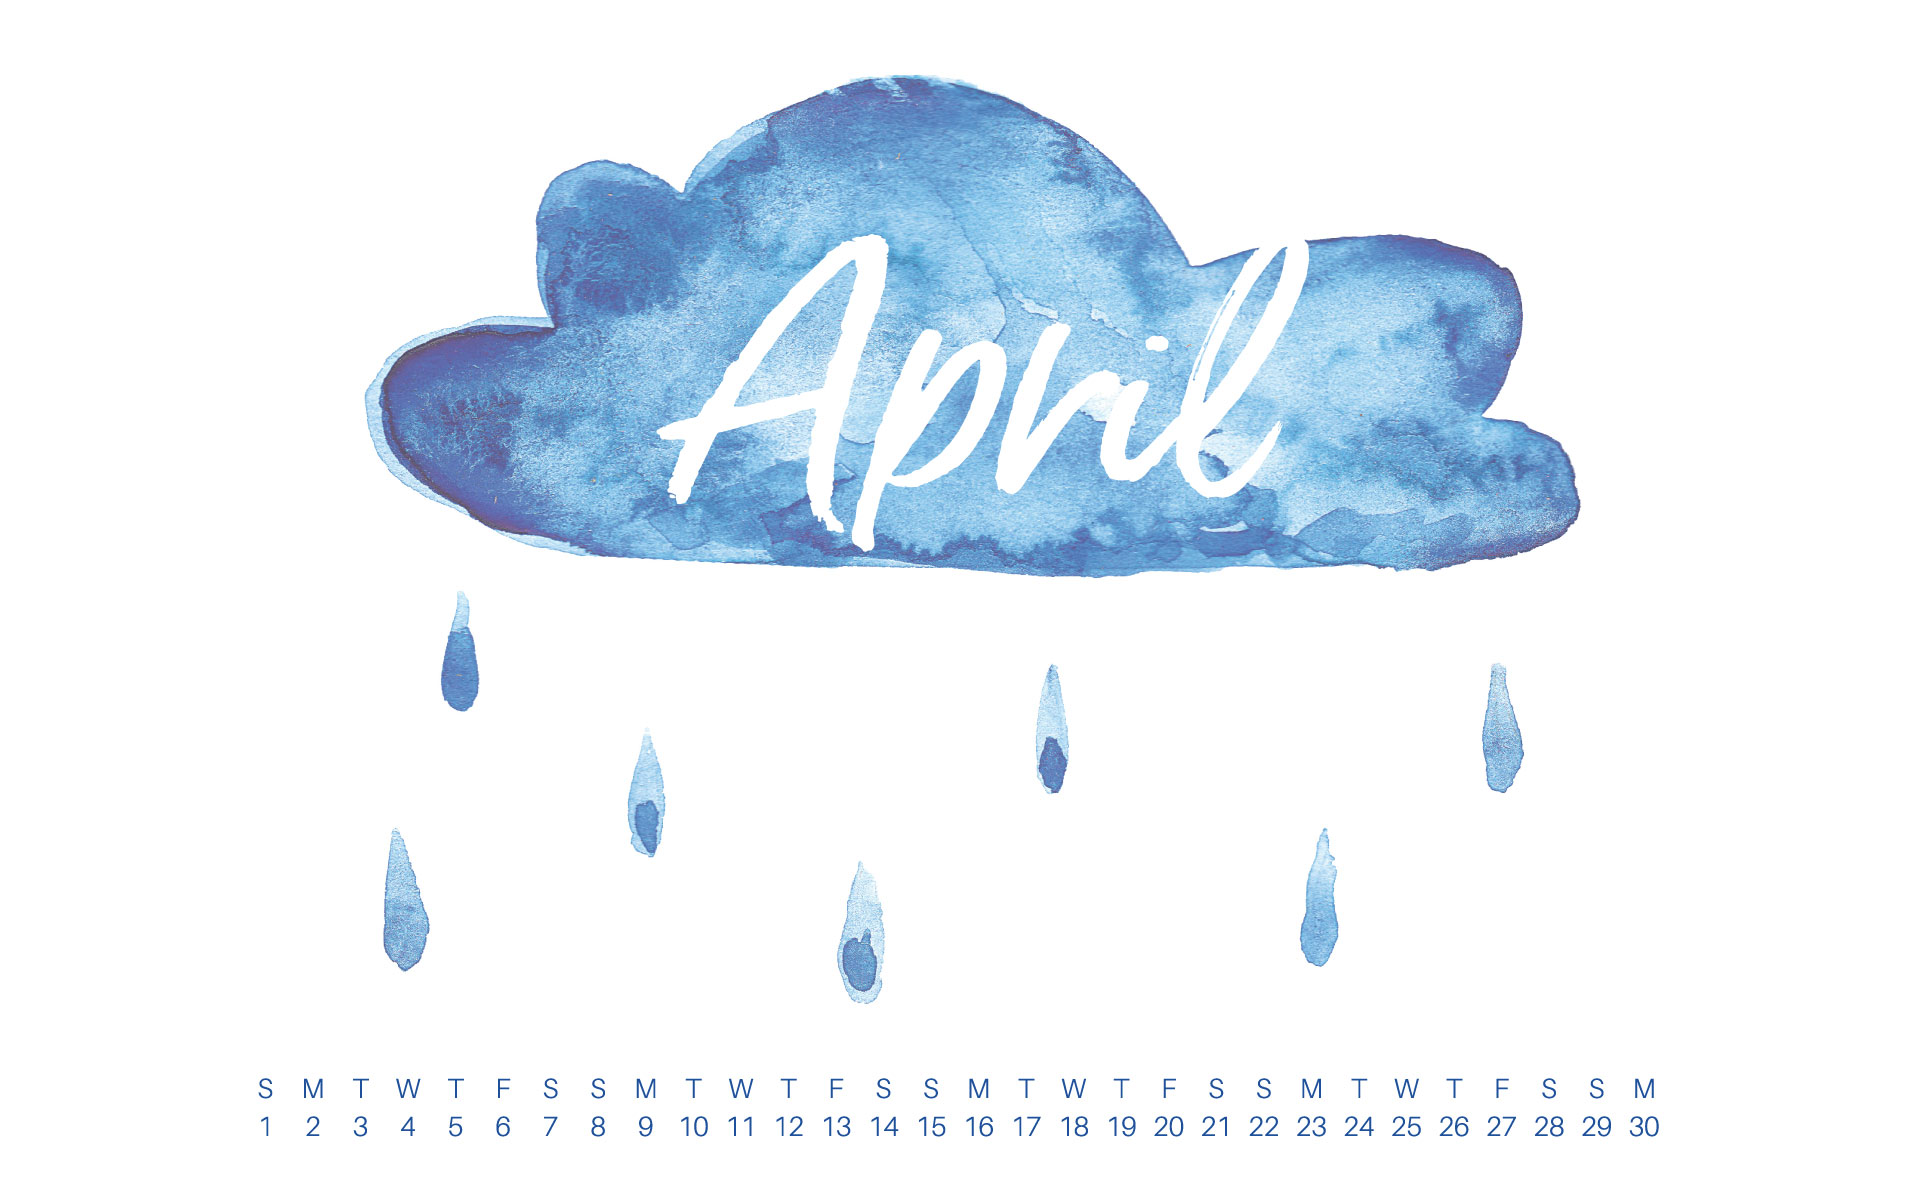 Uppercase Designs April 2018 Desktop Calendar Wallpaper